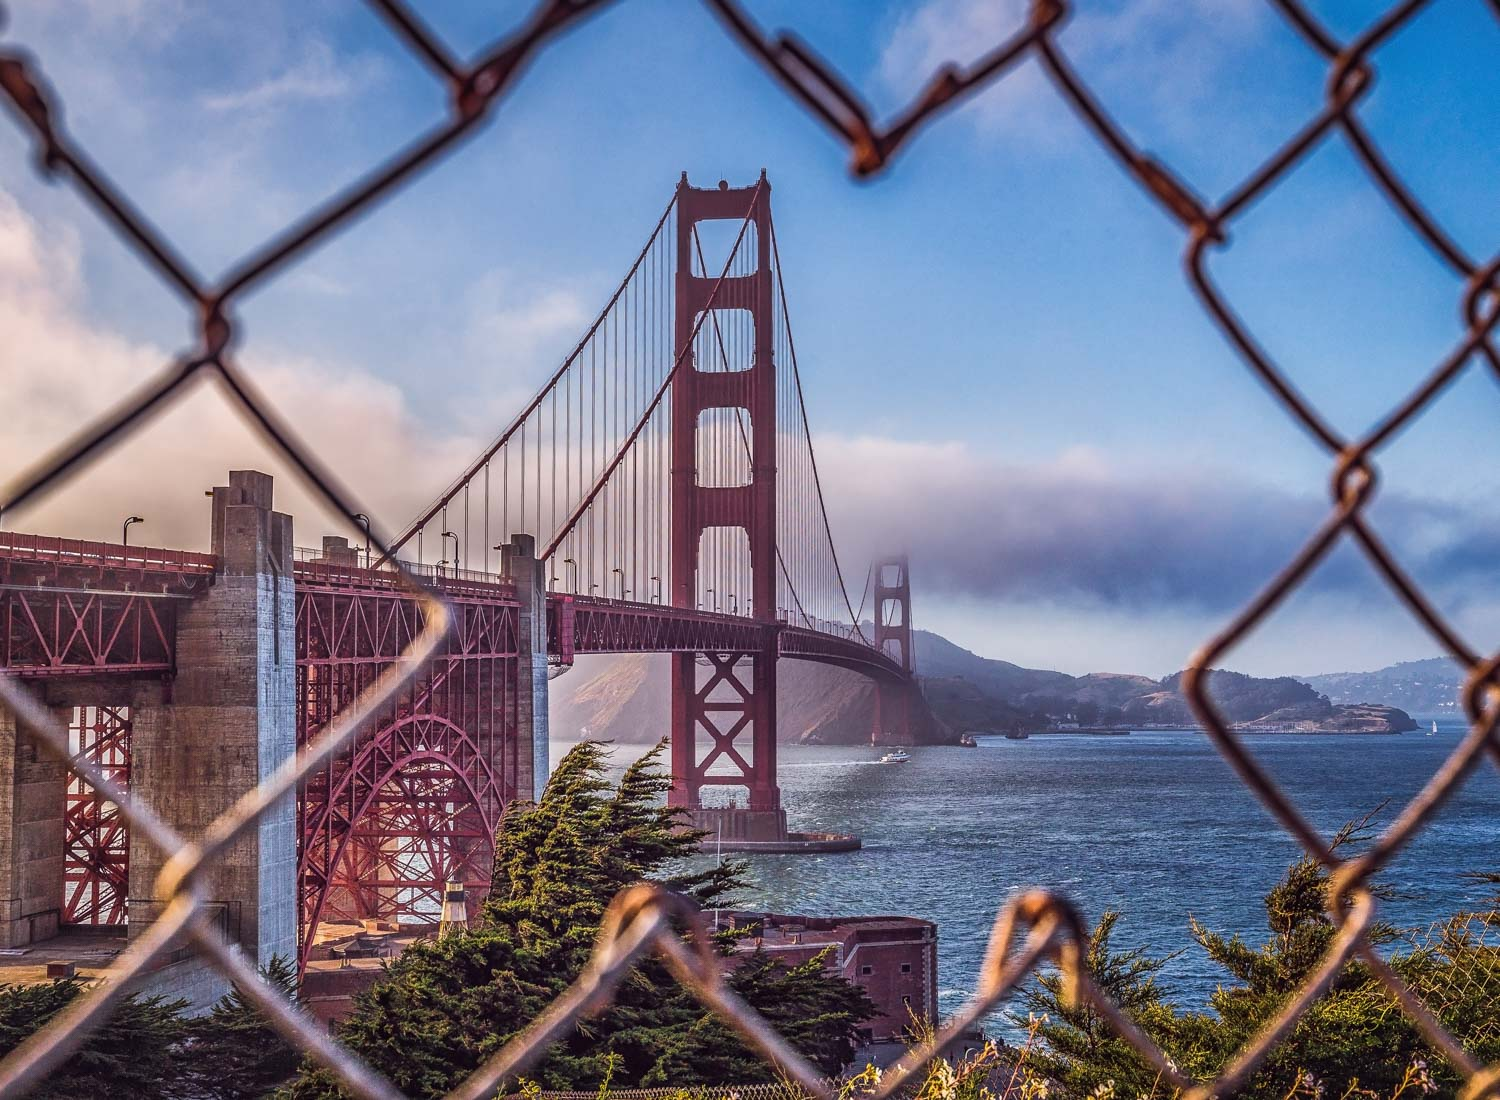 Golden Gate Bridge - San Francisco, USA - City Photography